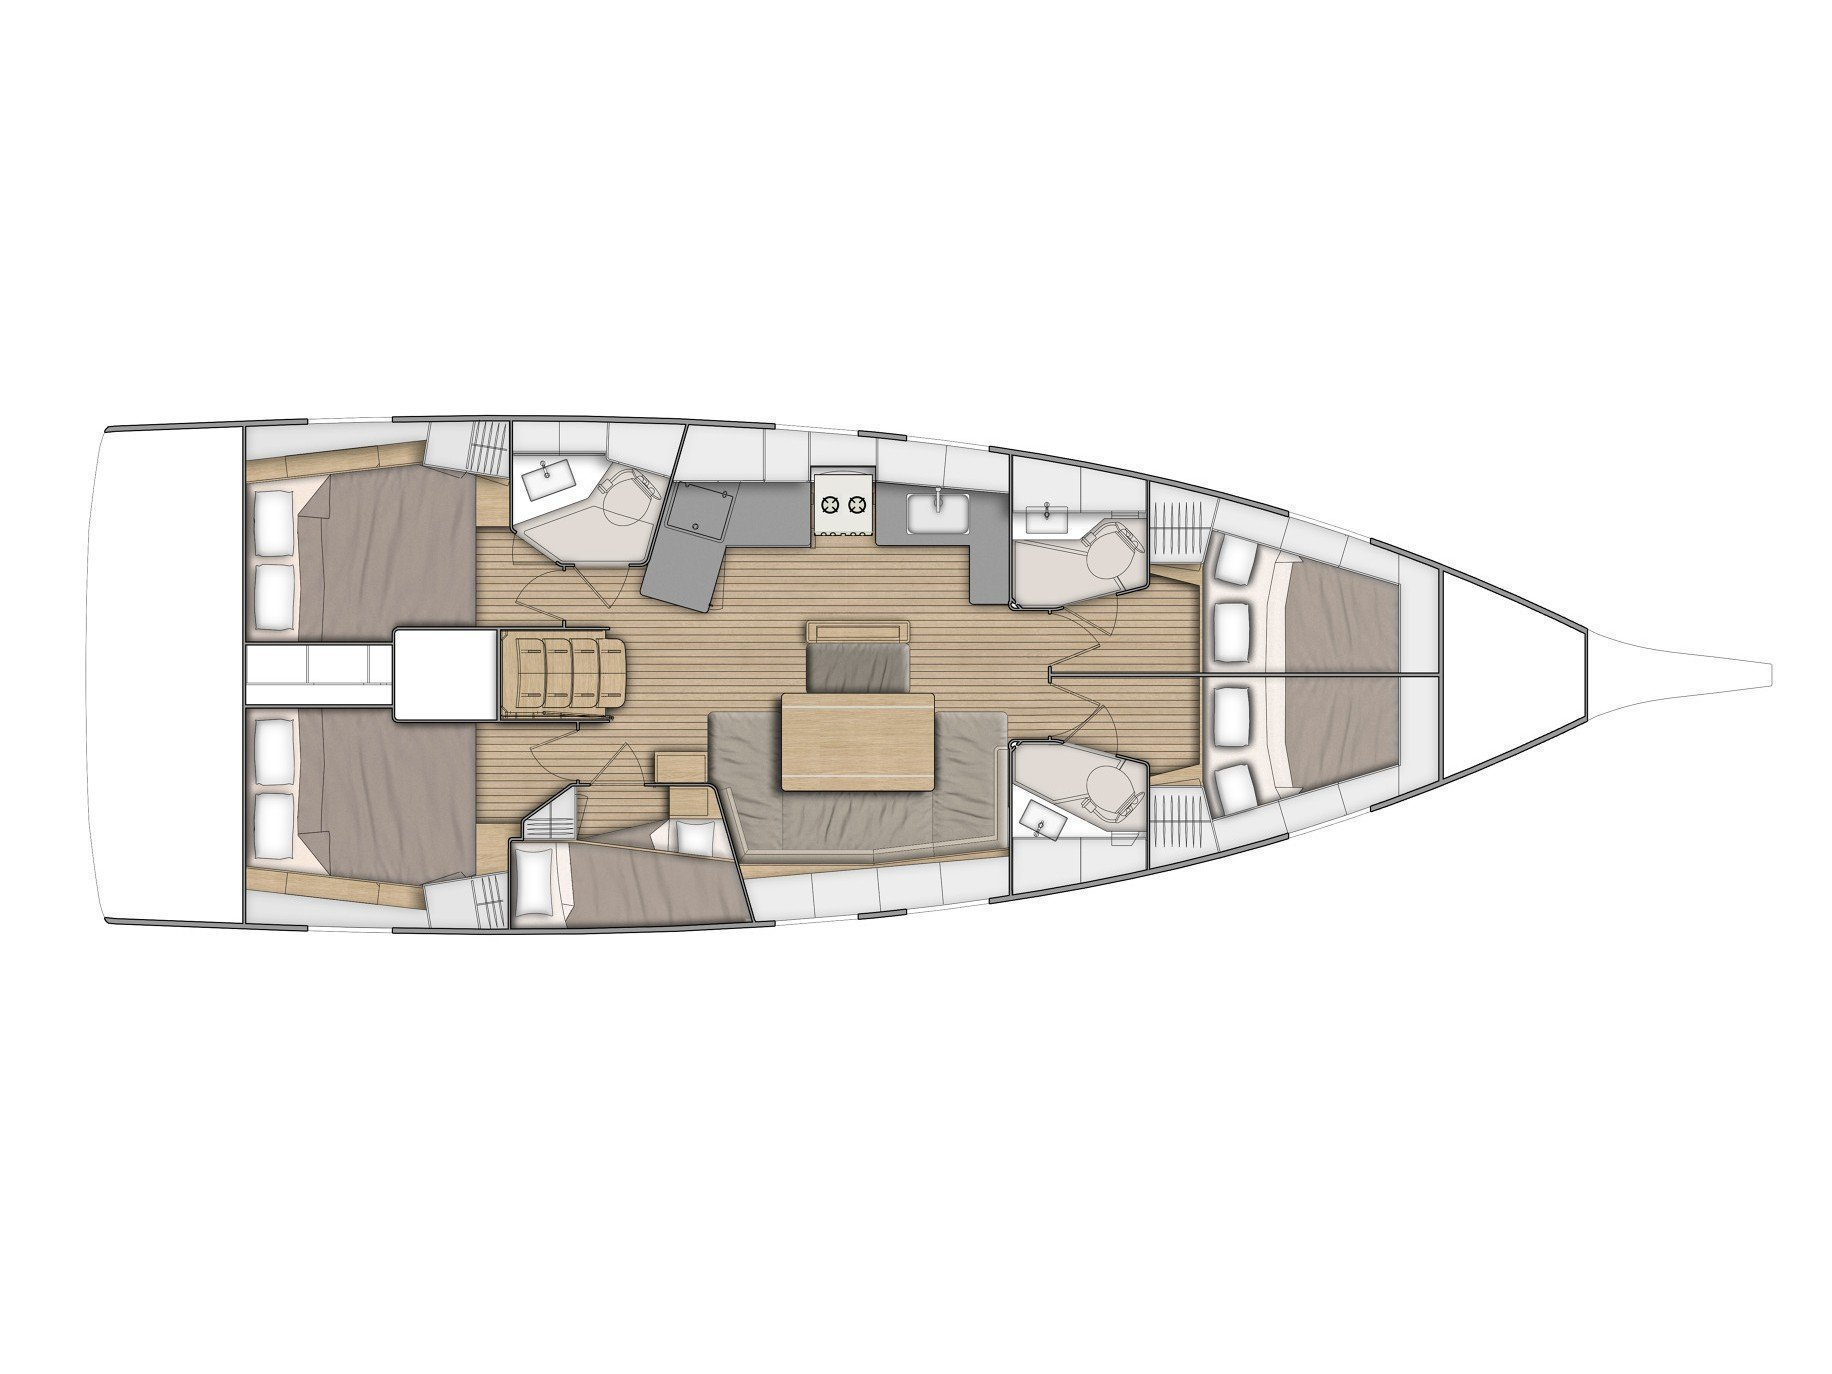 Oceanis 46.1 (SEA YA-with AC) Plan image - 30